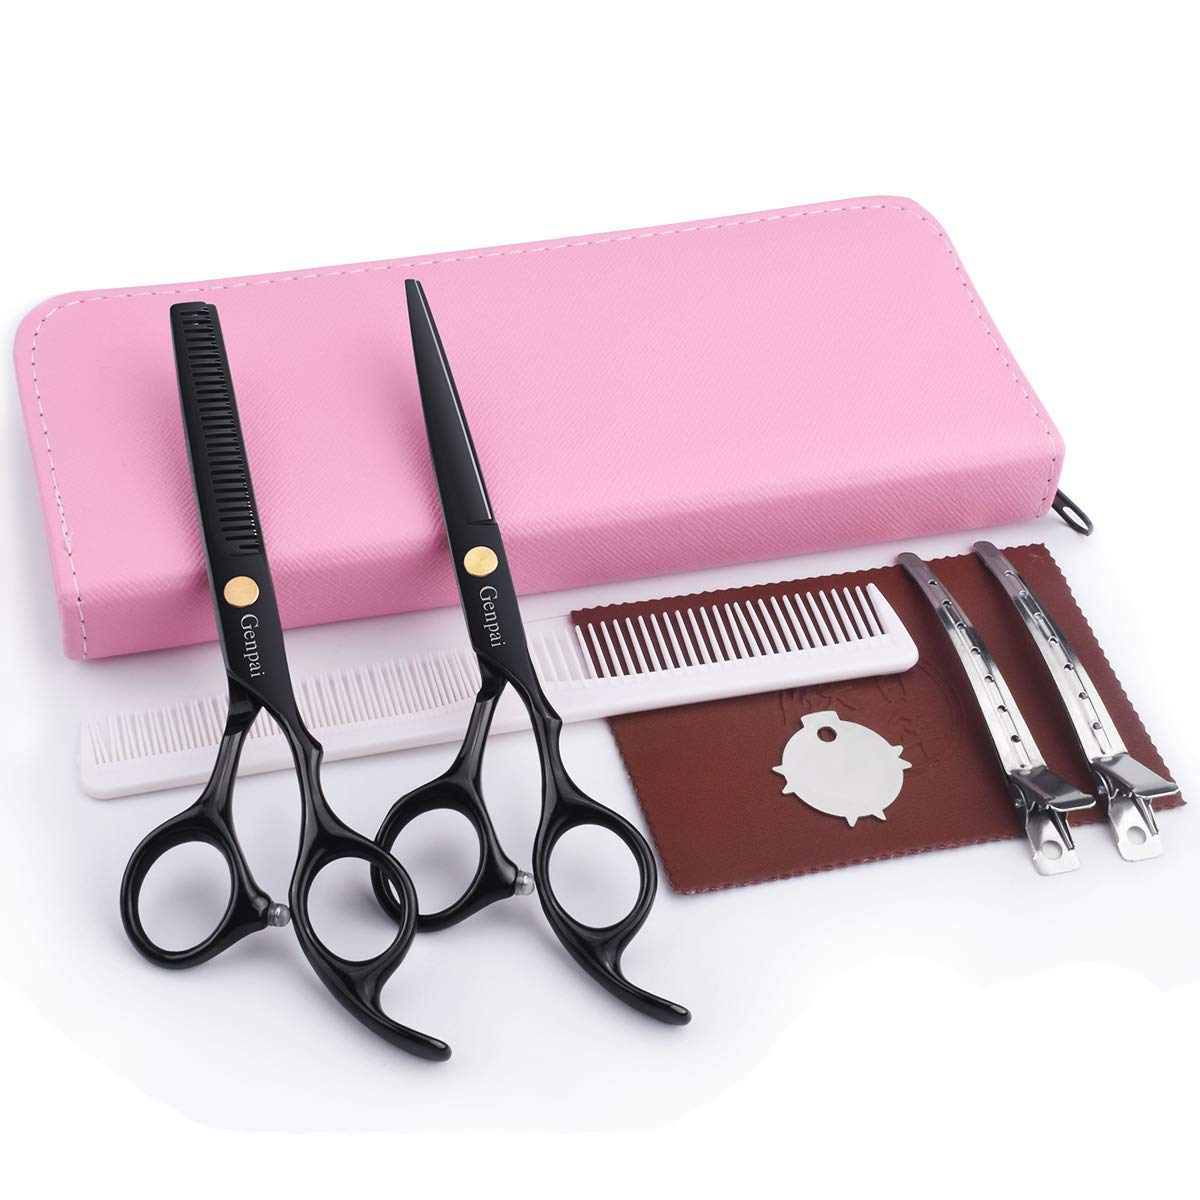 GENPAI Hair Cutting Scissors Set, Professional Barber Hair Salon Household Children's Stainless Steel Shear Bangs Artifact Thinning Hairdressing Shear with Pink Leather Case(Pink)